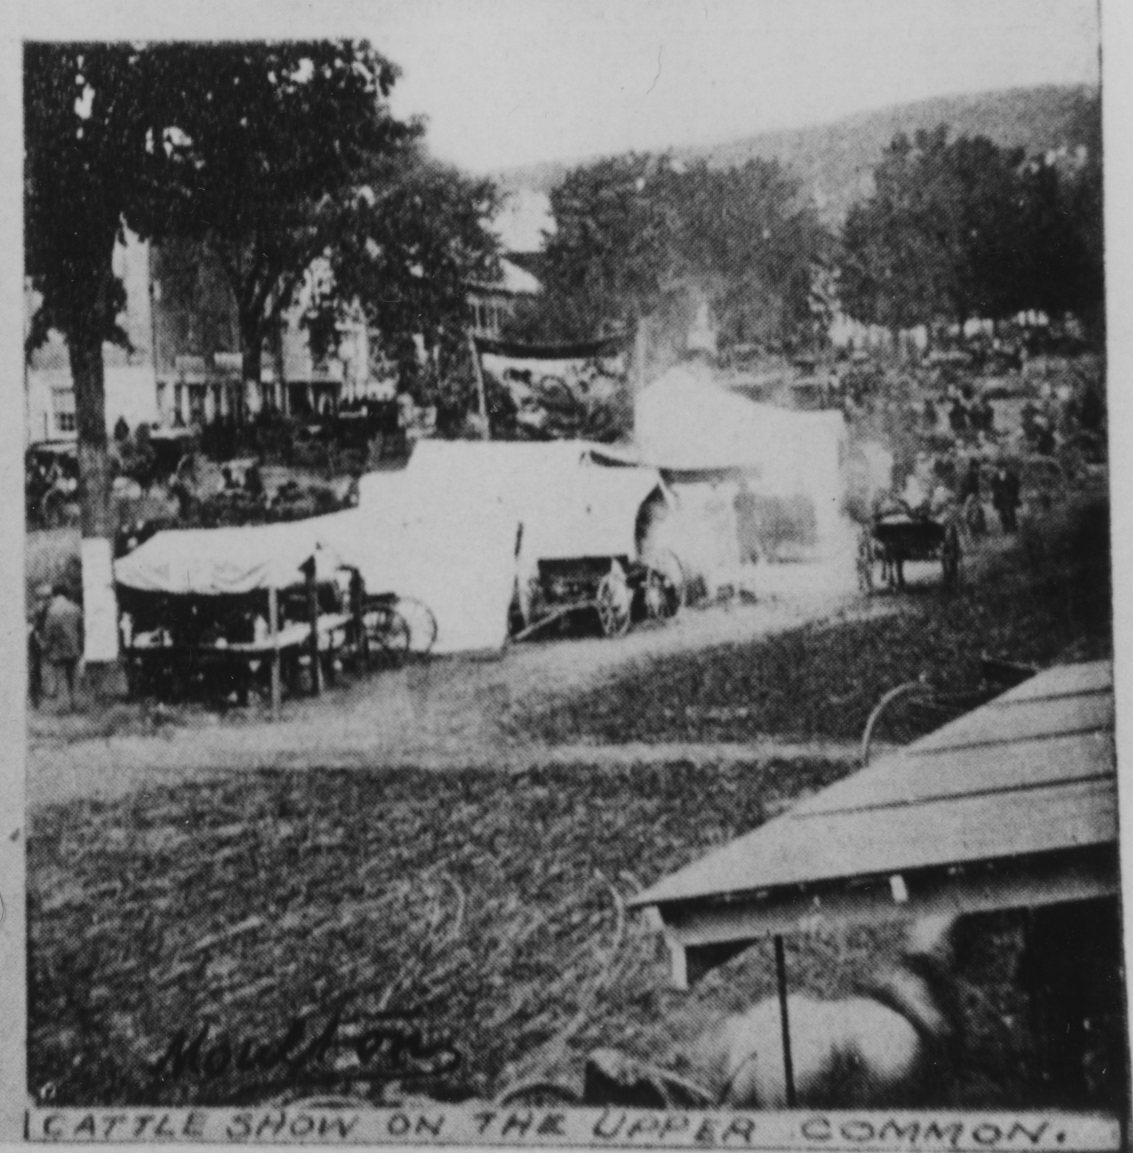 Reproduction of 1860's (?)  photo of Cattle Show on the Upper Common